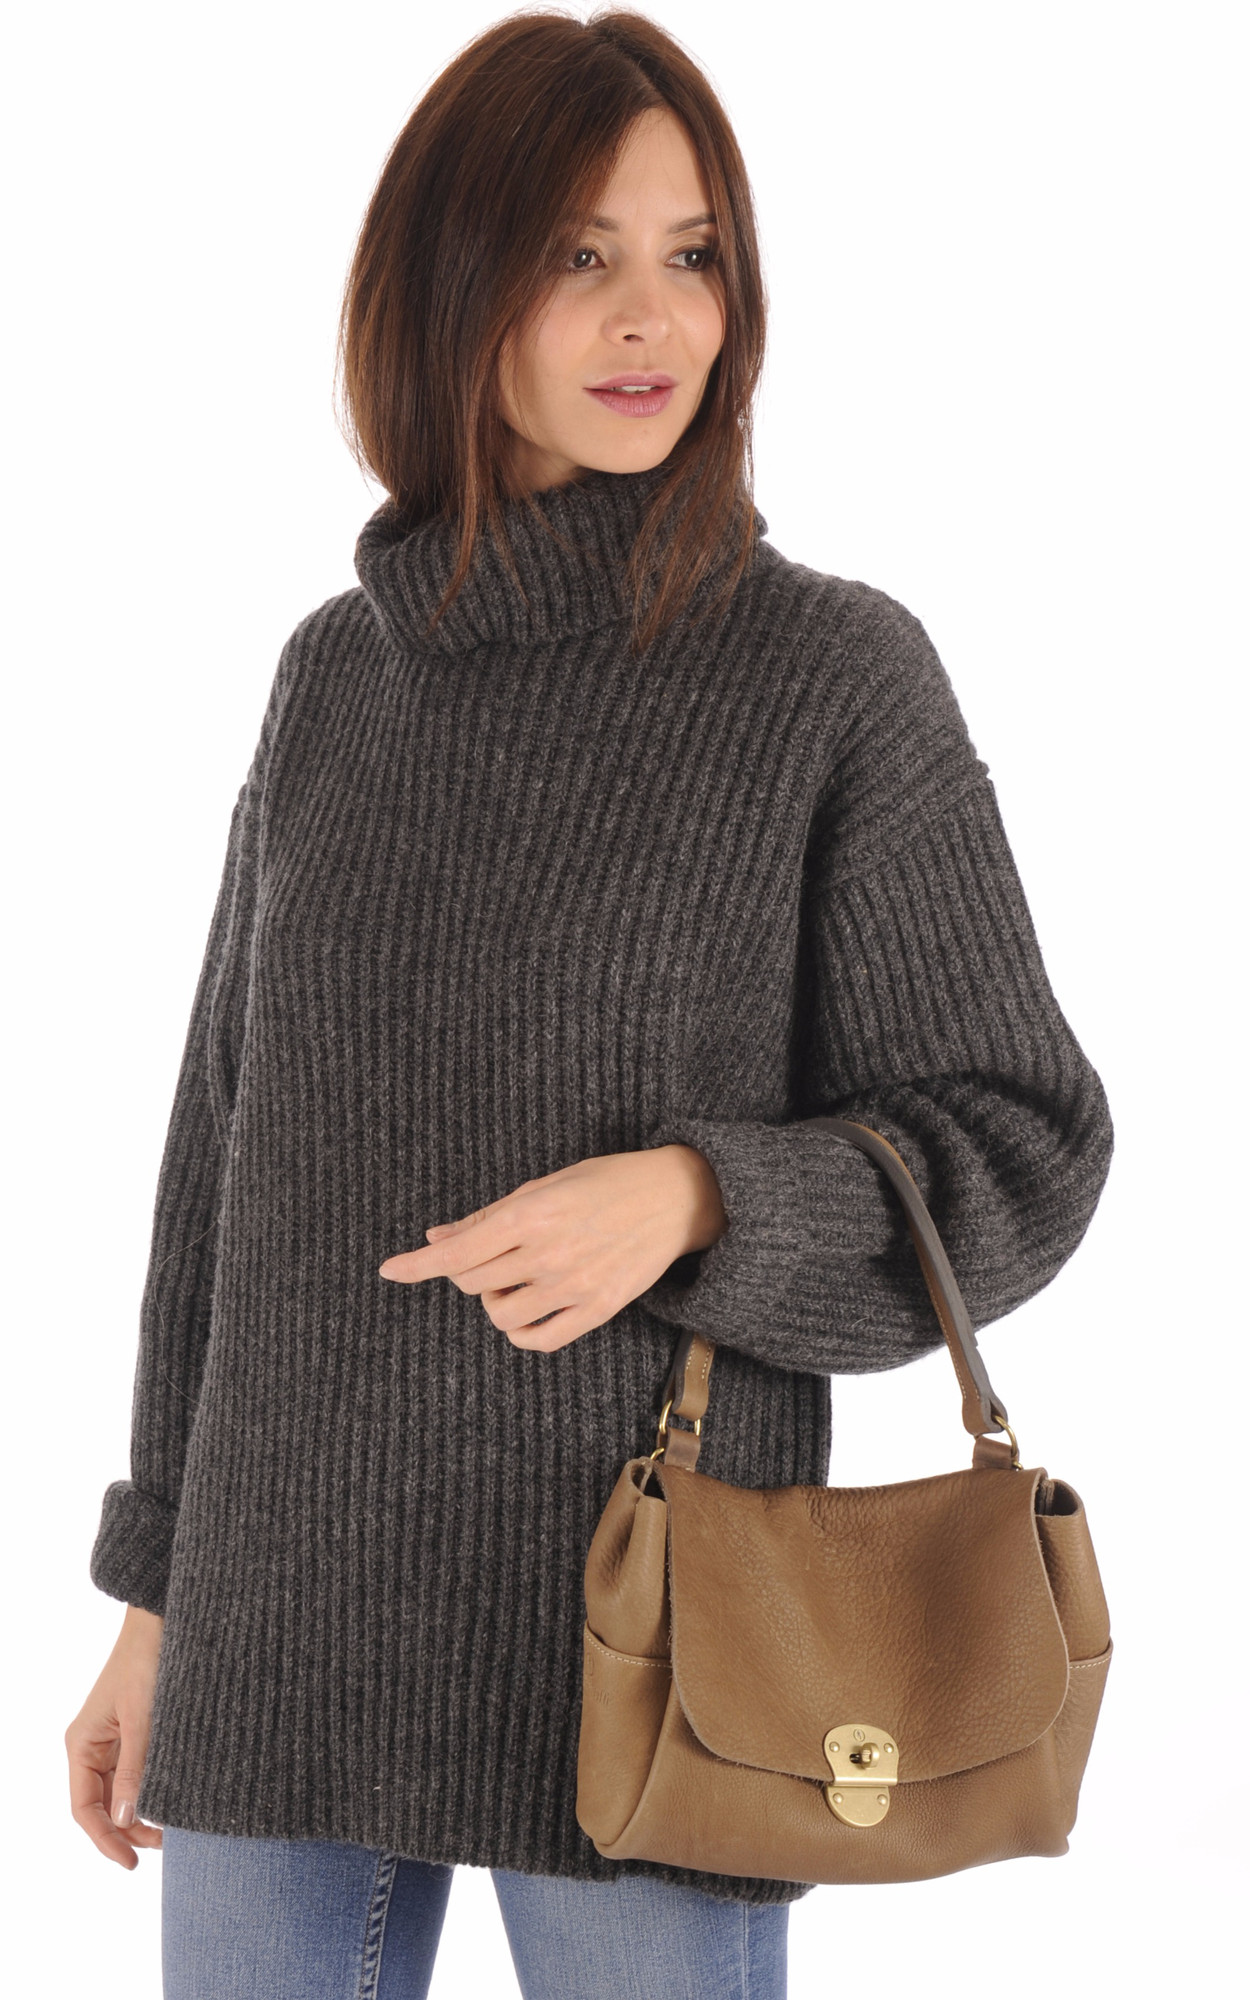 Sac Besace Vachette Taupe1